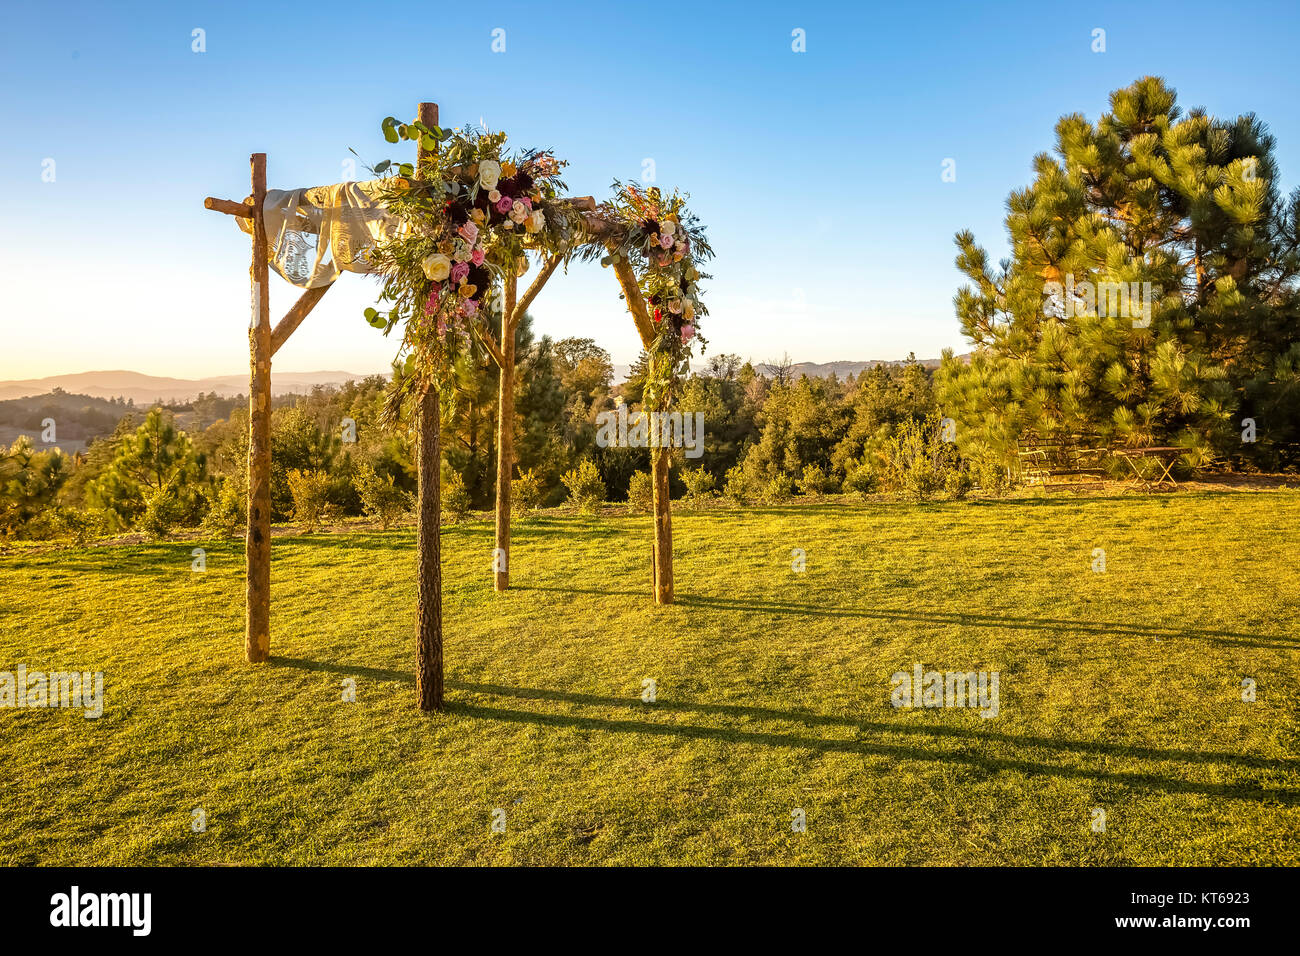 Jewish traditions wedding ceremony. Wedding canopy chuppah or huppah during golden hour Stock Photo